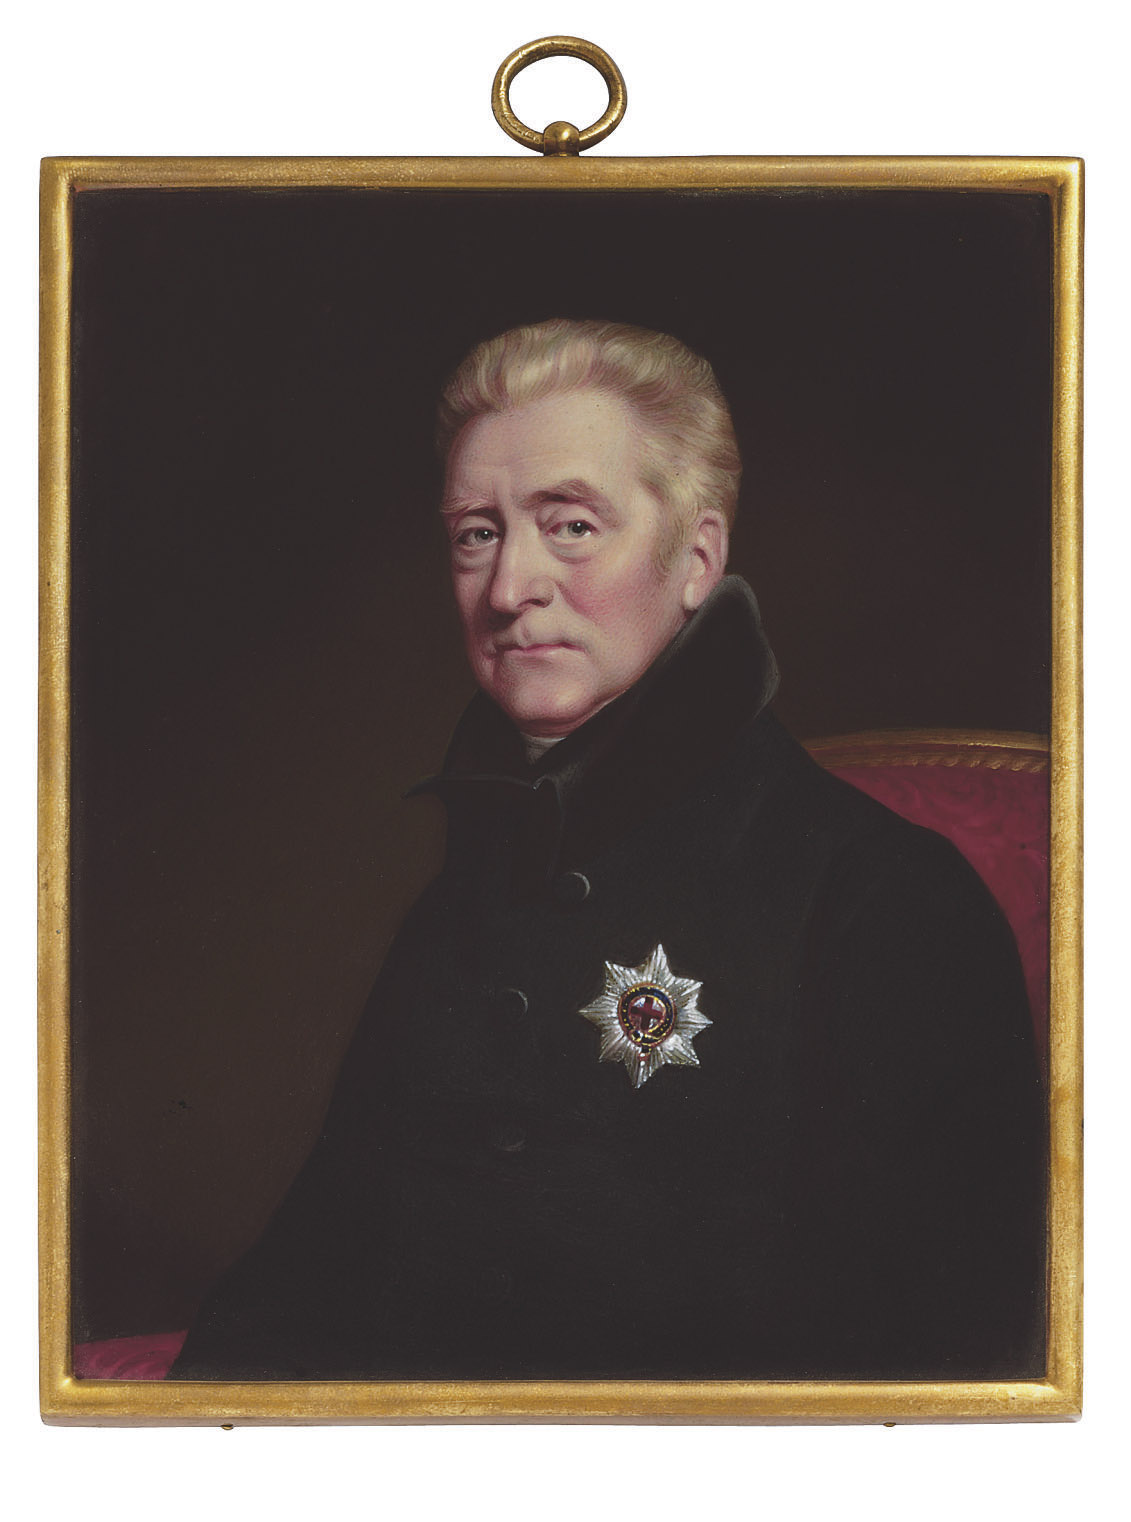 George John, 2nd Earl Spencer, K.G. (1758-1834), seated on a red-upholstered chair, in dark green coat with black collar, wearing the breast-star of the Order of the Garter